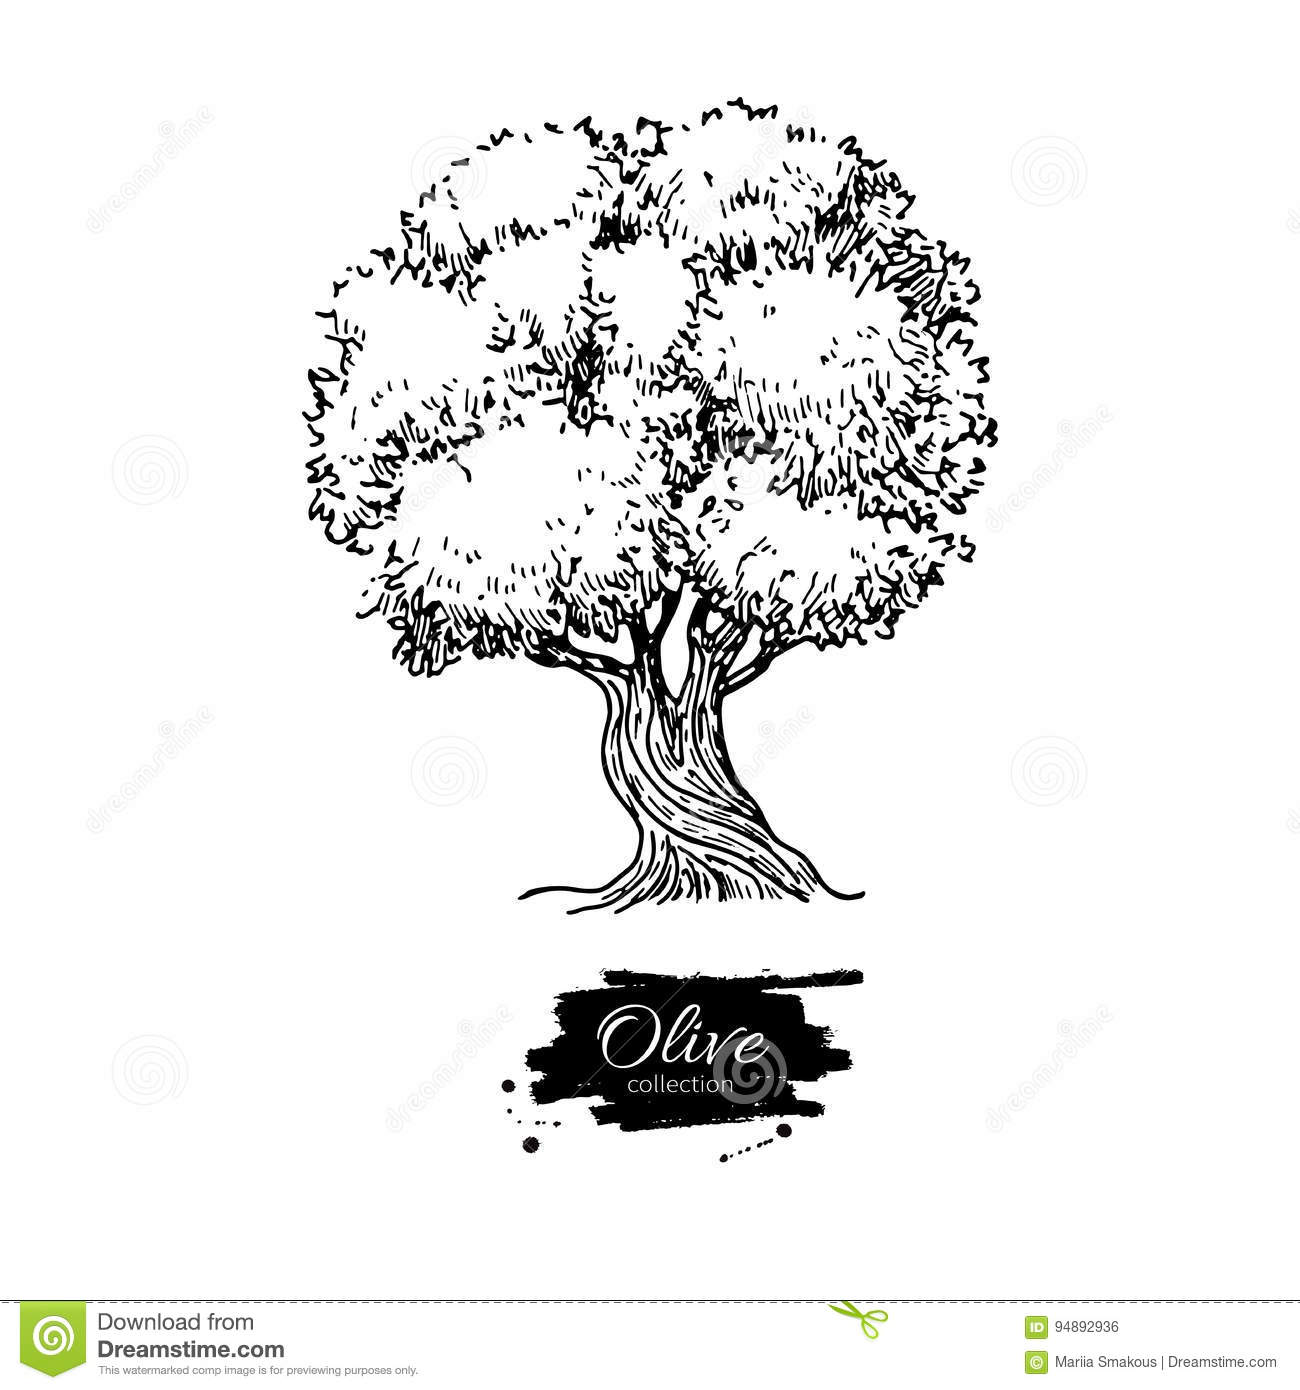 Olive tree hand drawn vector illustration vintage botanical download olive tree hand drawn vector illustration vintage botanical drawing old style engraved thecheapjerseys Gallery